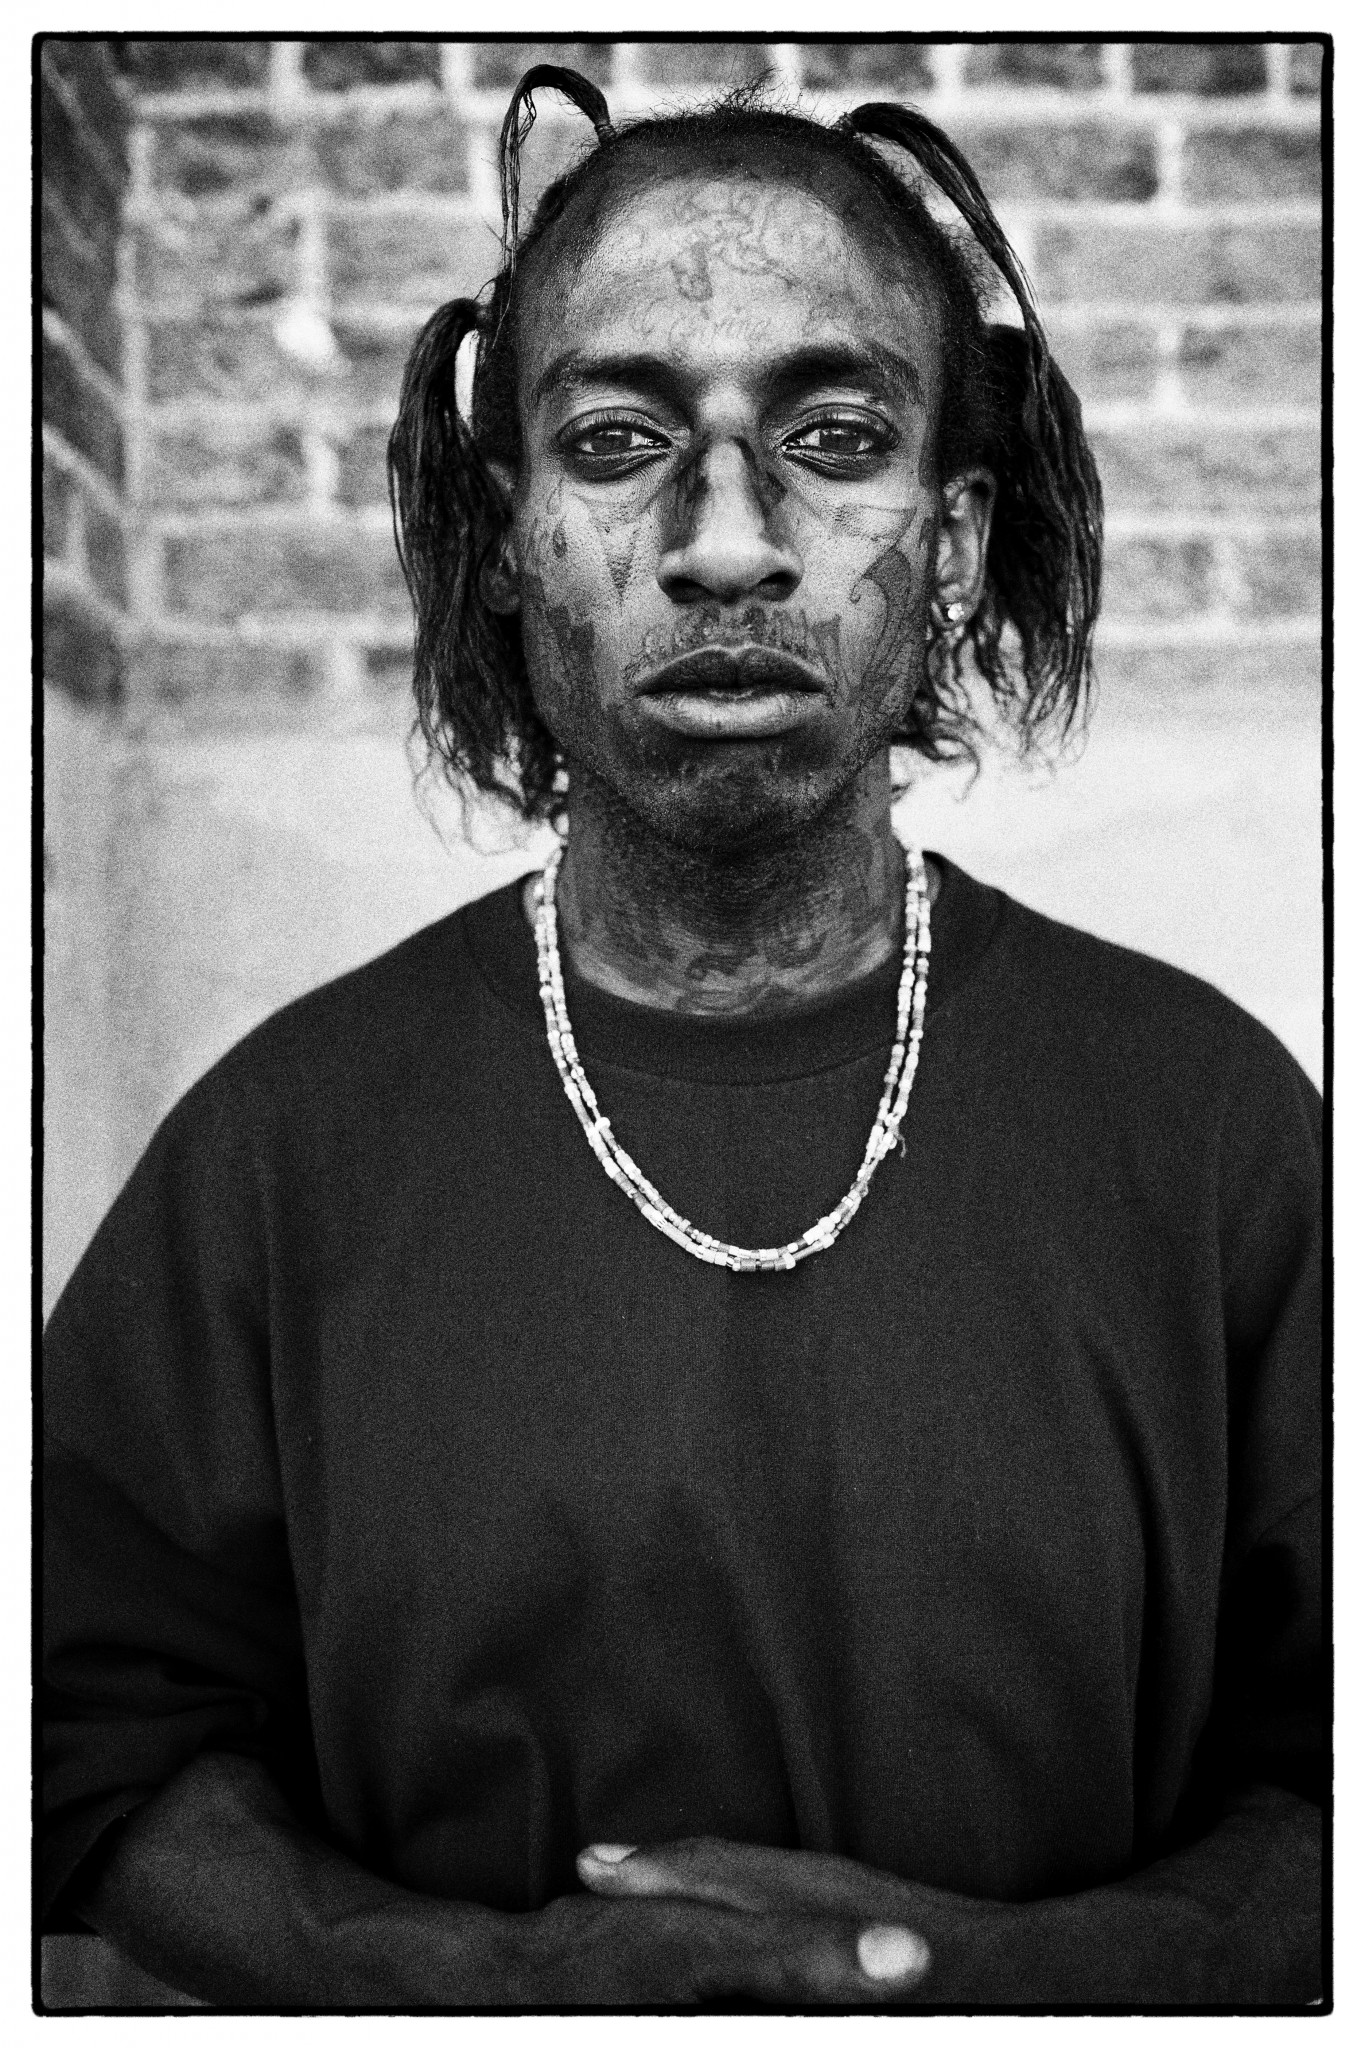 LA gangs' Crip as captured by Andres Herren